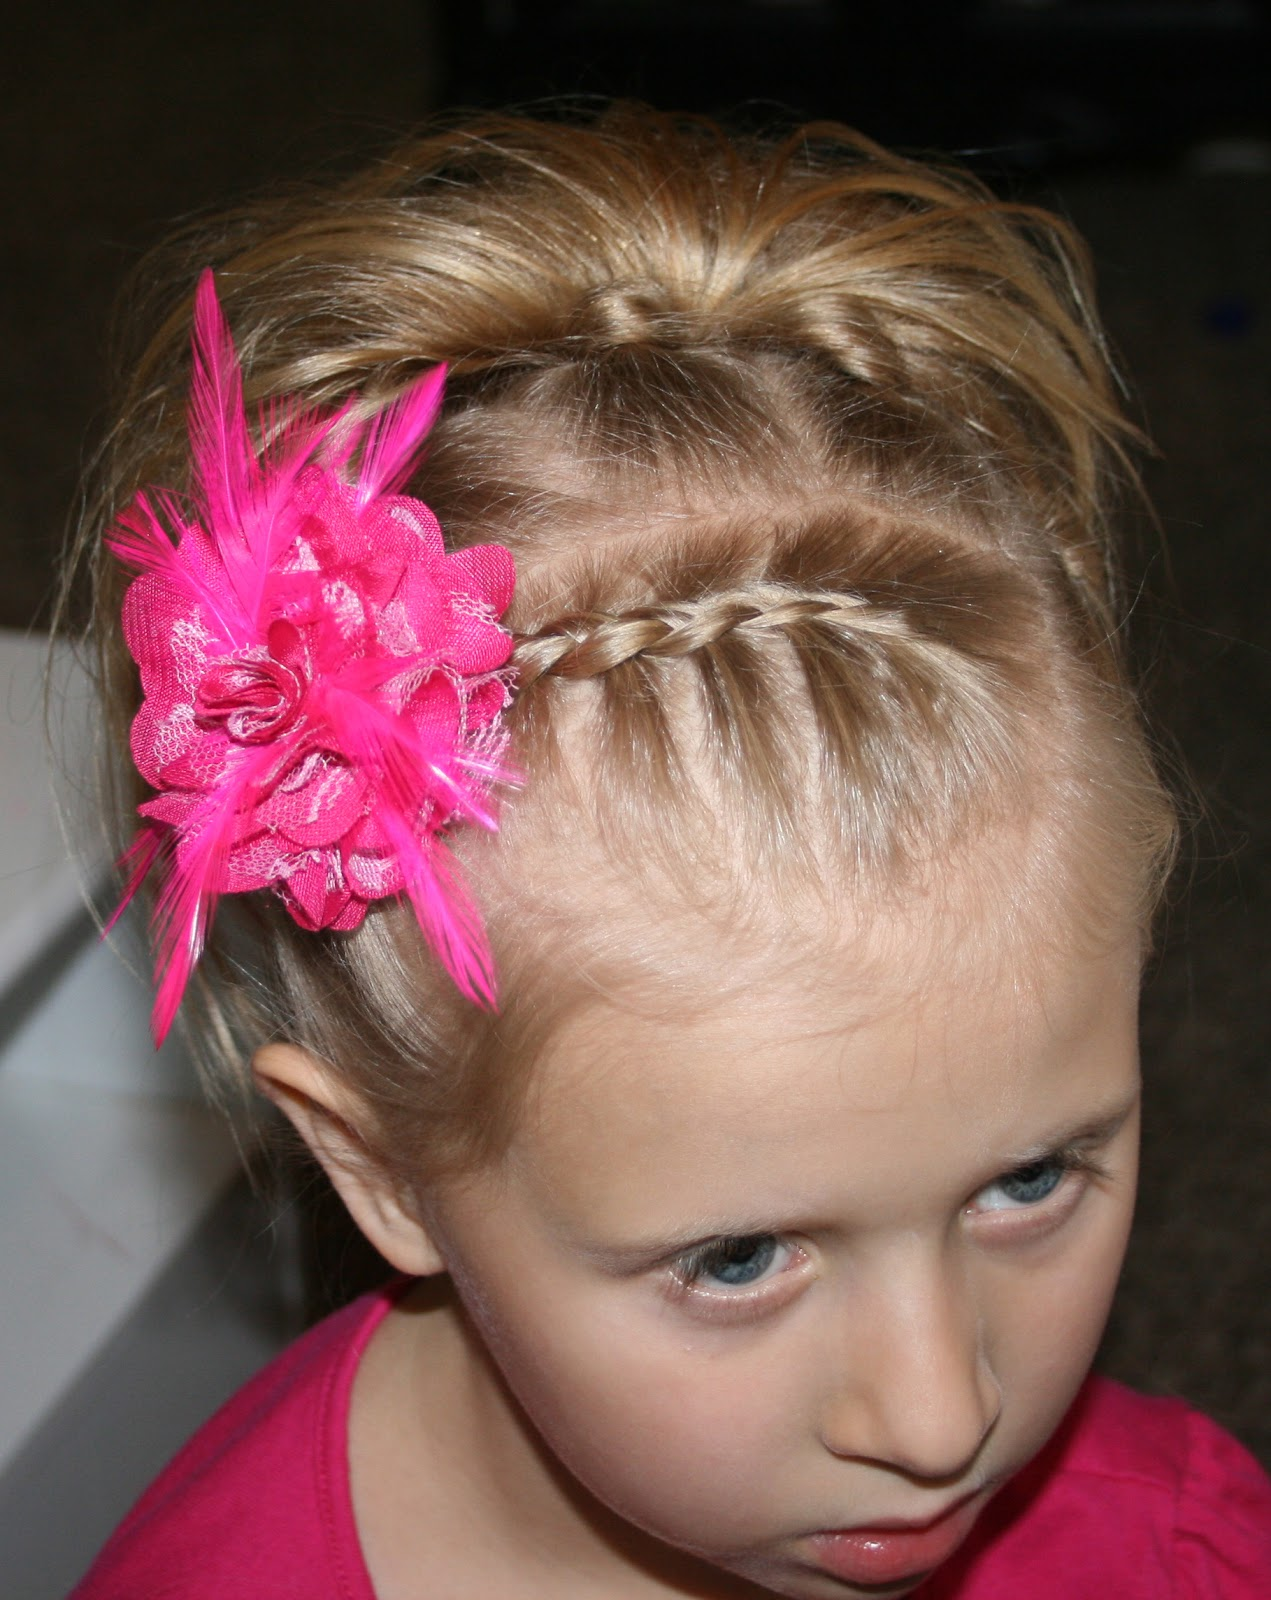 Pictures of Braided Hairstyles For Short Hair Little Girls